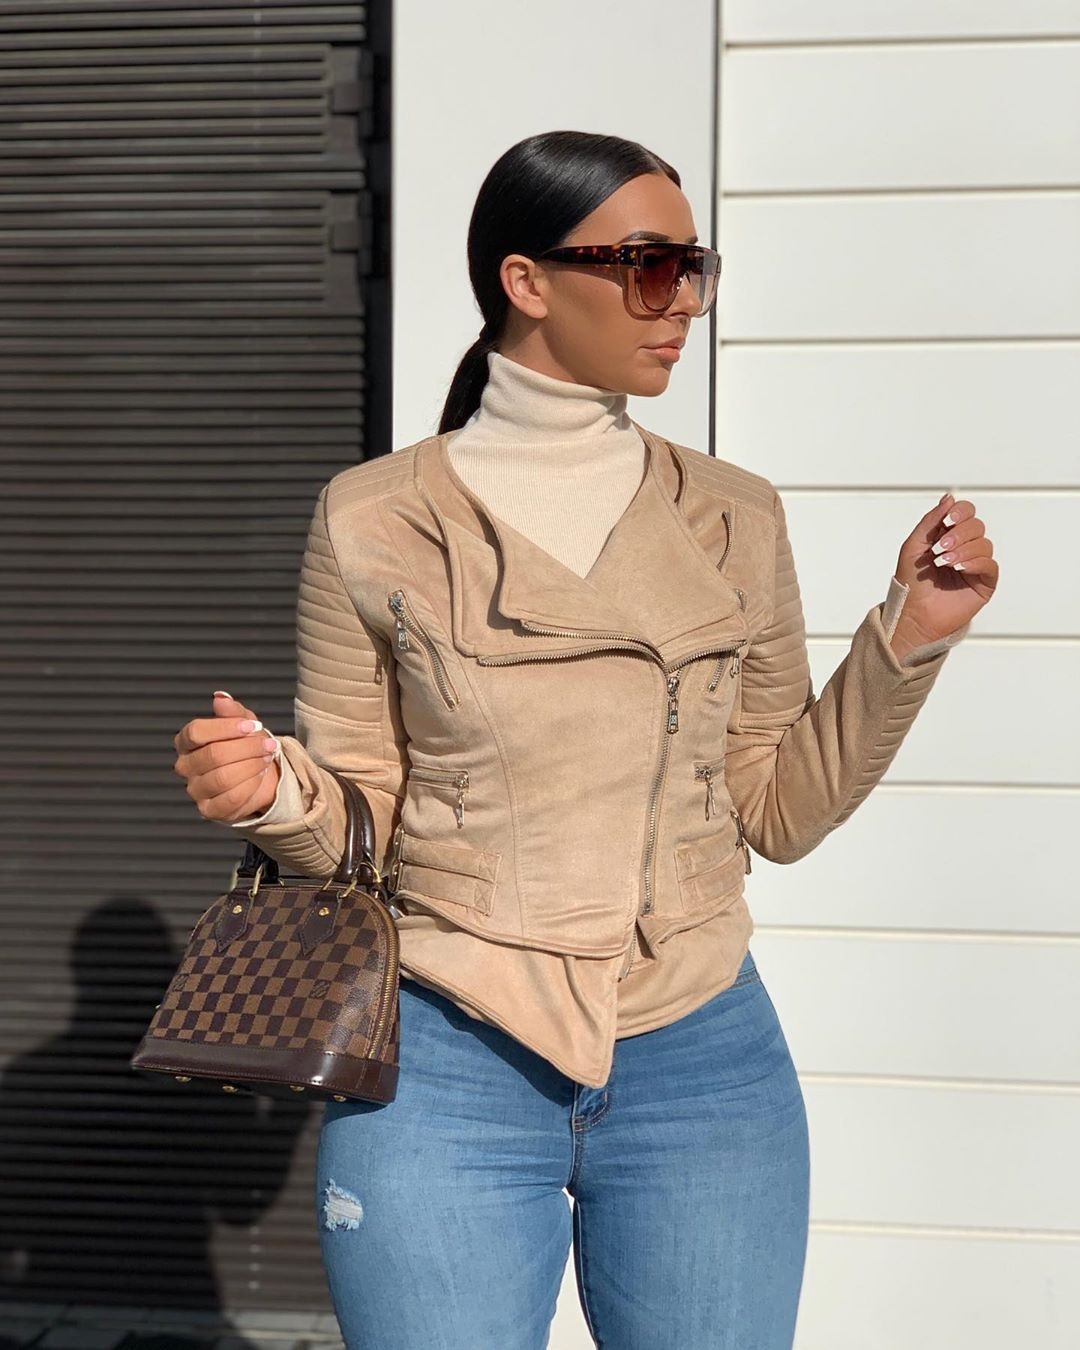 beige colour outfit with jacket, denim, jeans